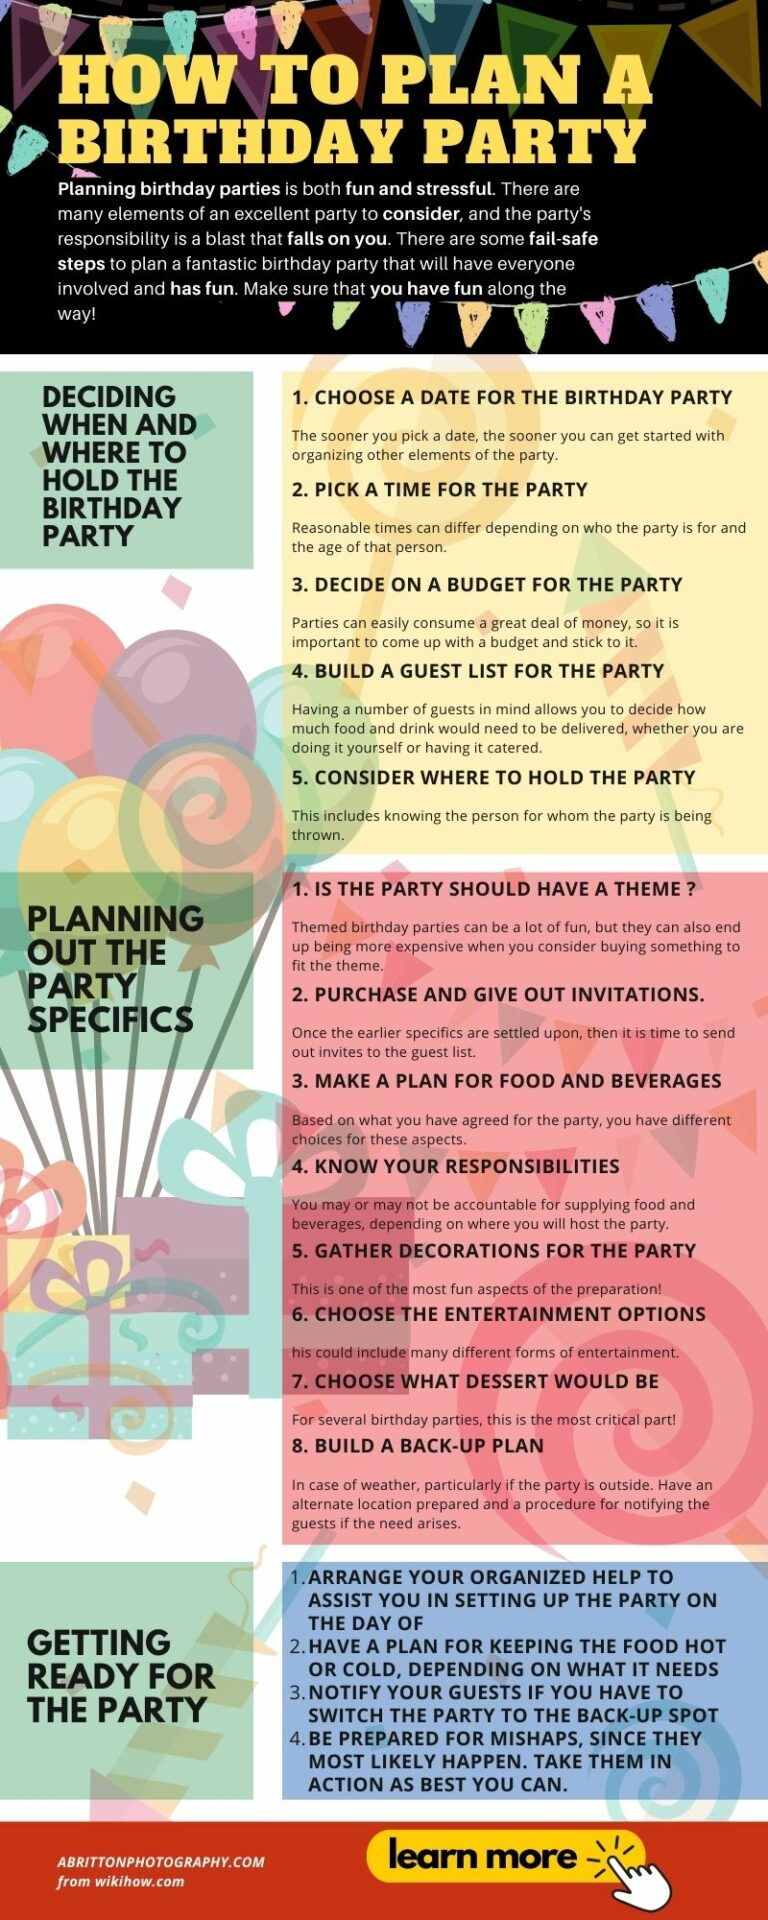 Infographic How to Plan a Birthday Party - Birthday Picture Ideas